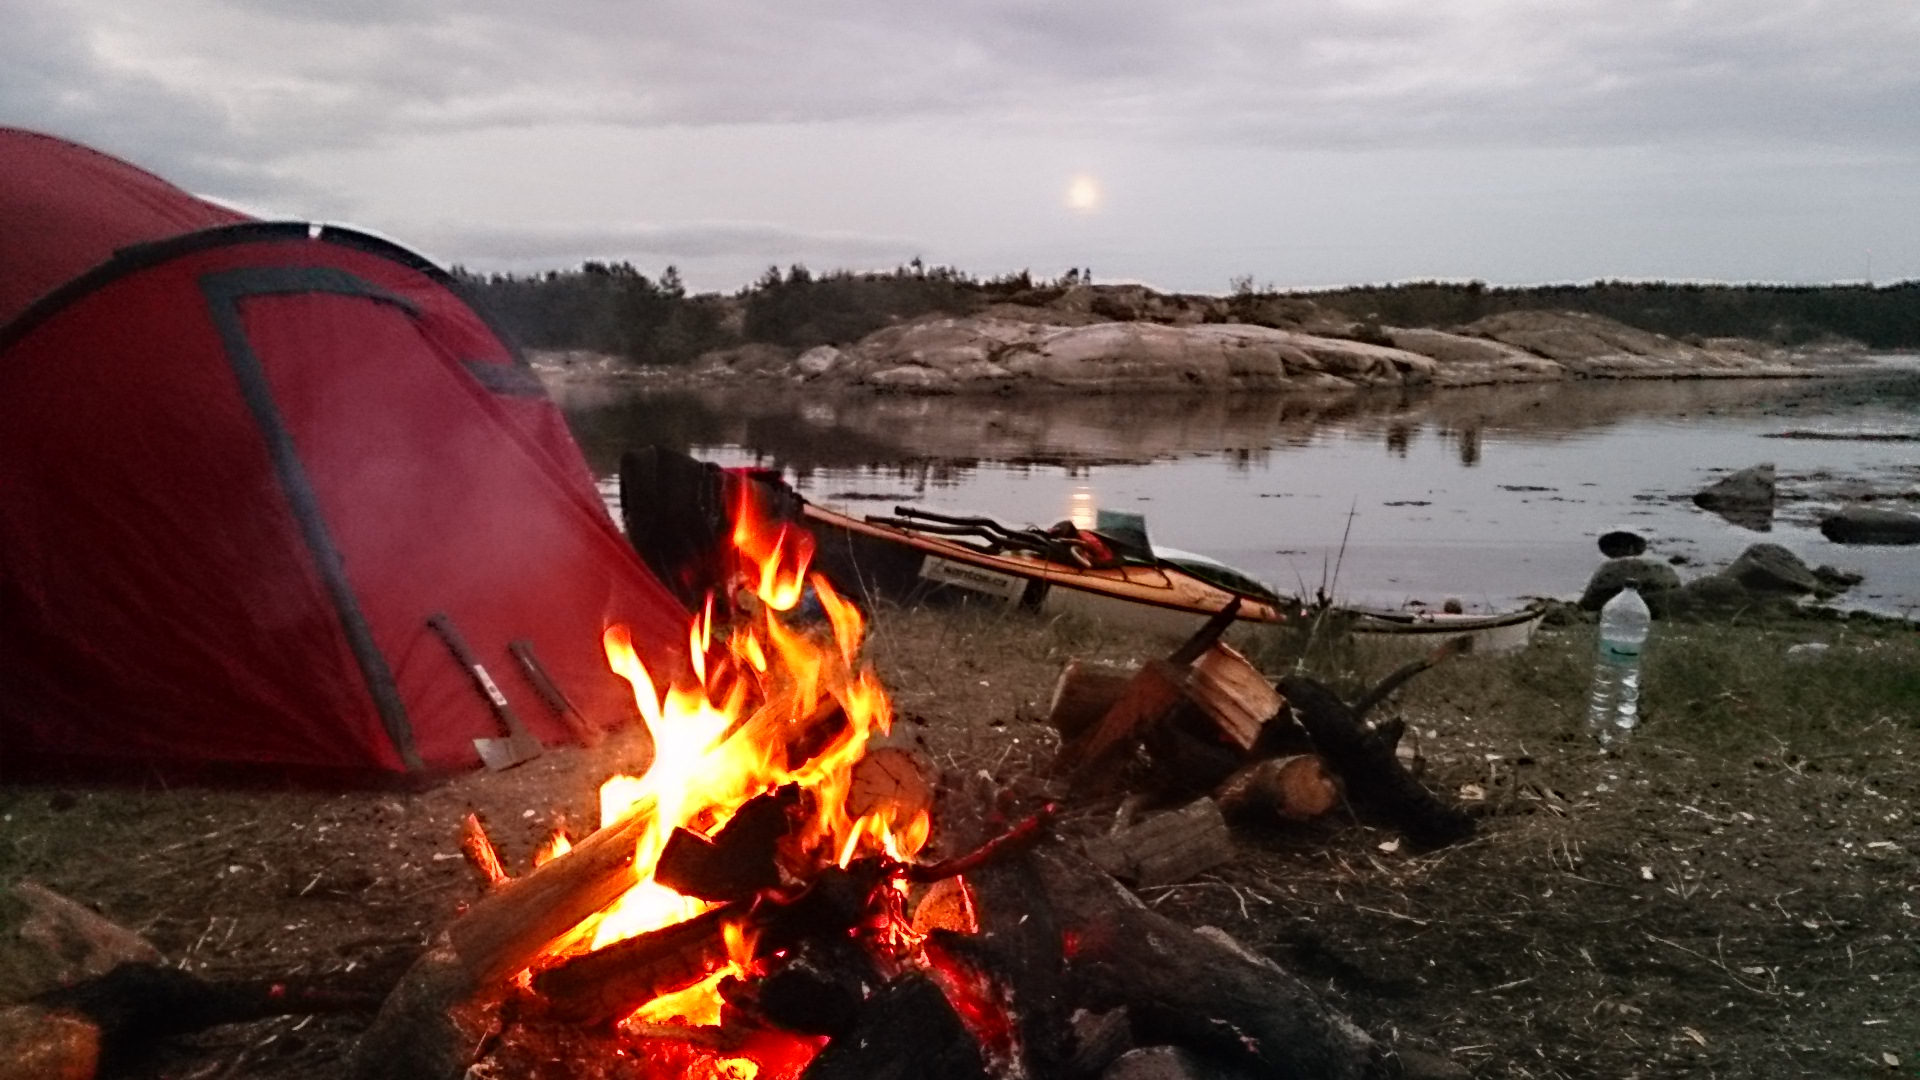 Nothing is better than a fire to dry things and keep warm